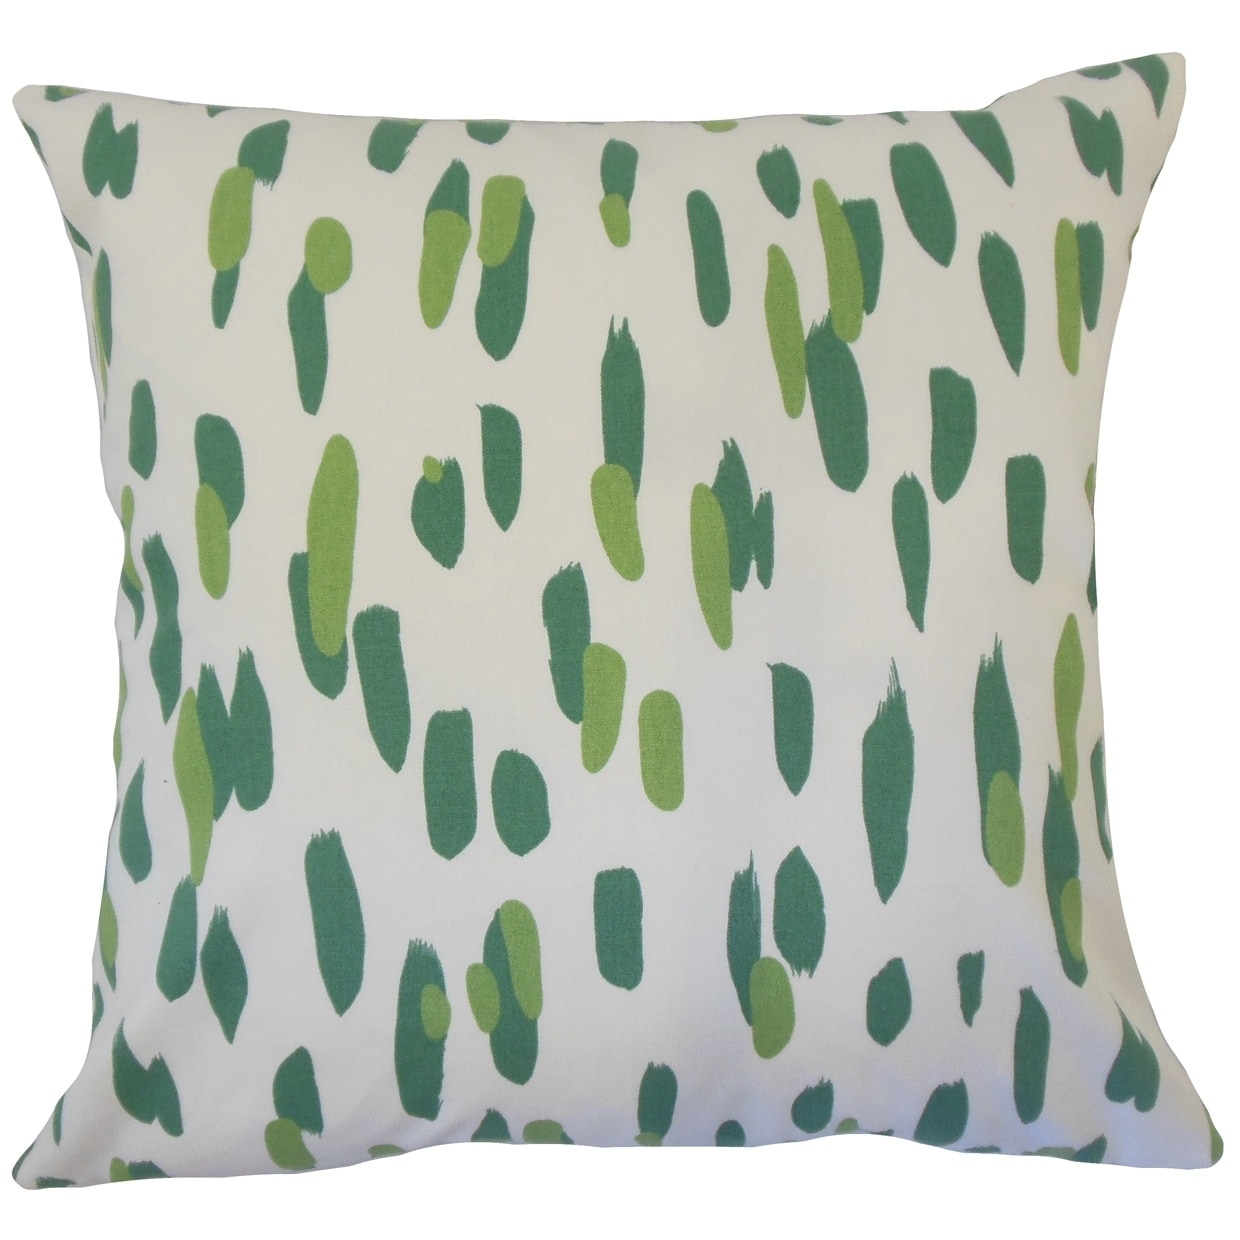 Velica Graphic Down Filled Throw Pillow in Palm (Square - 24 x 24)